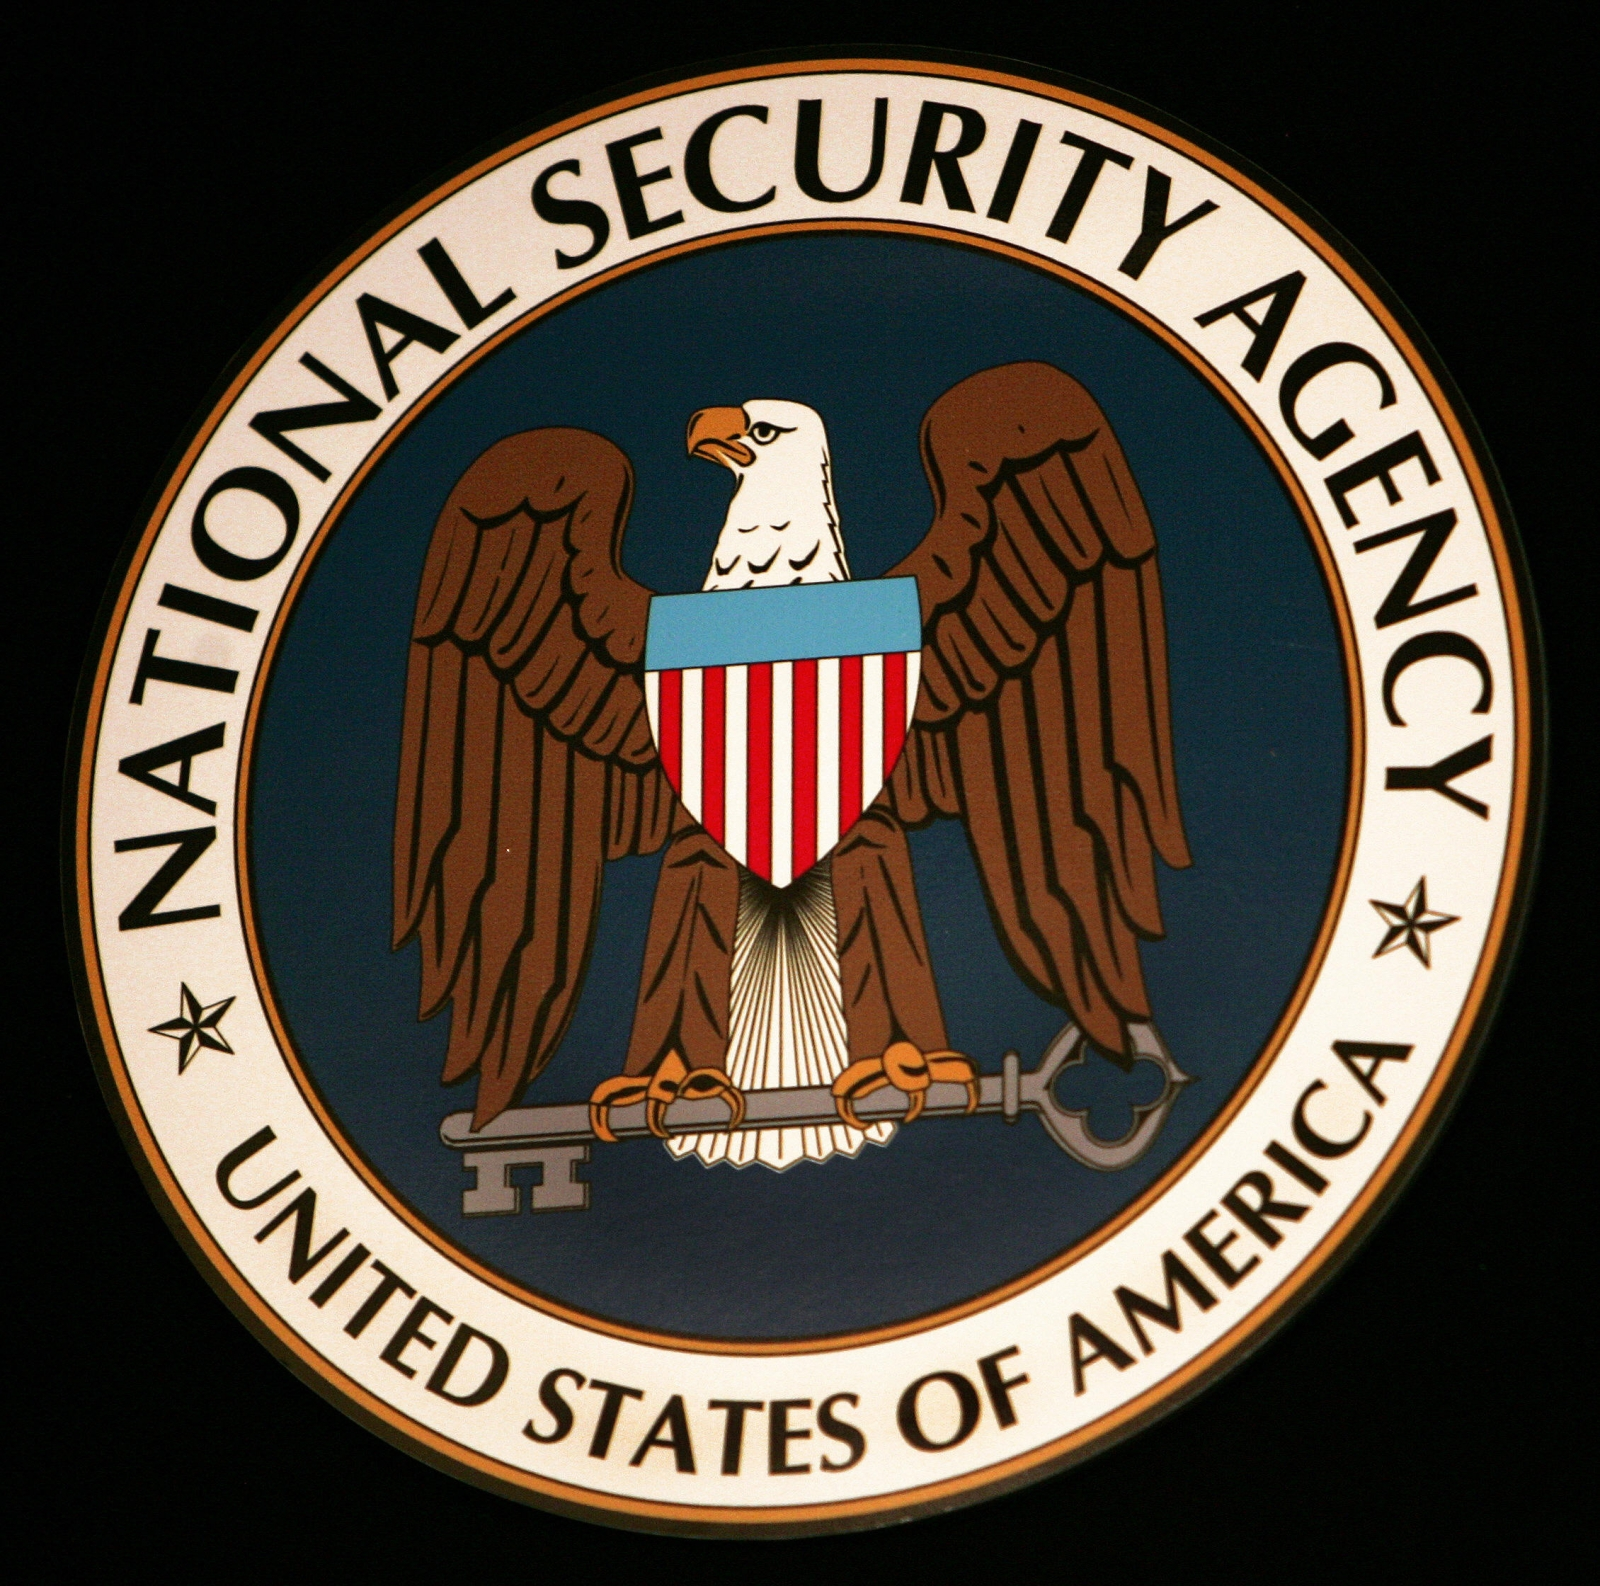 Hacker group releases password to alleged NSA files